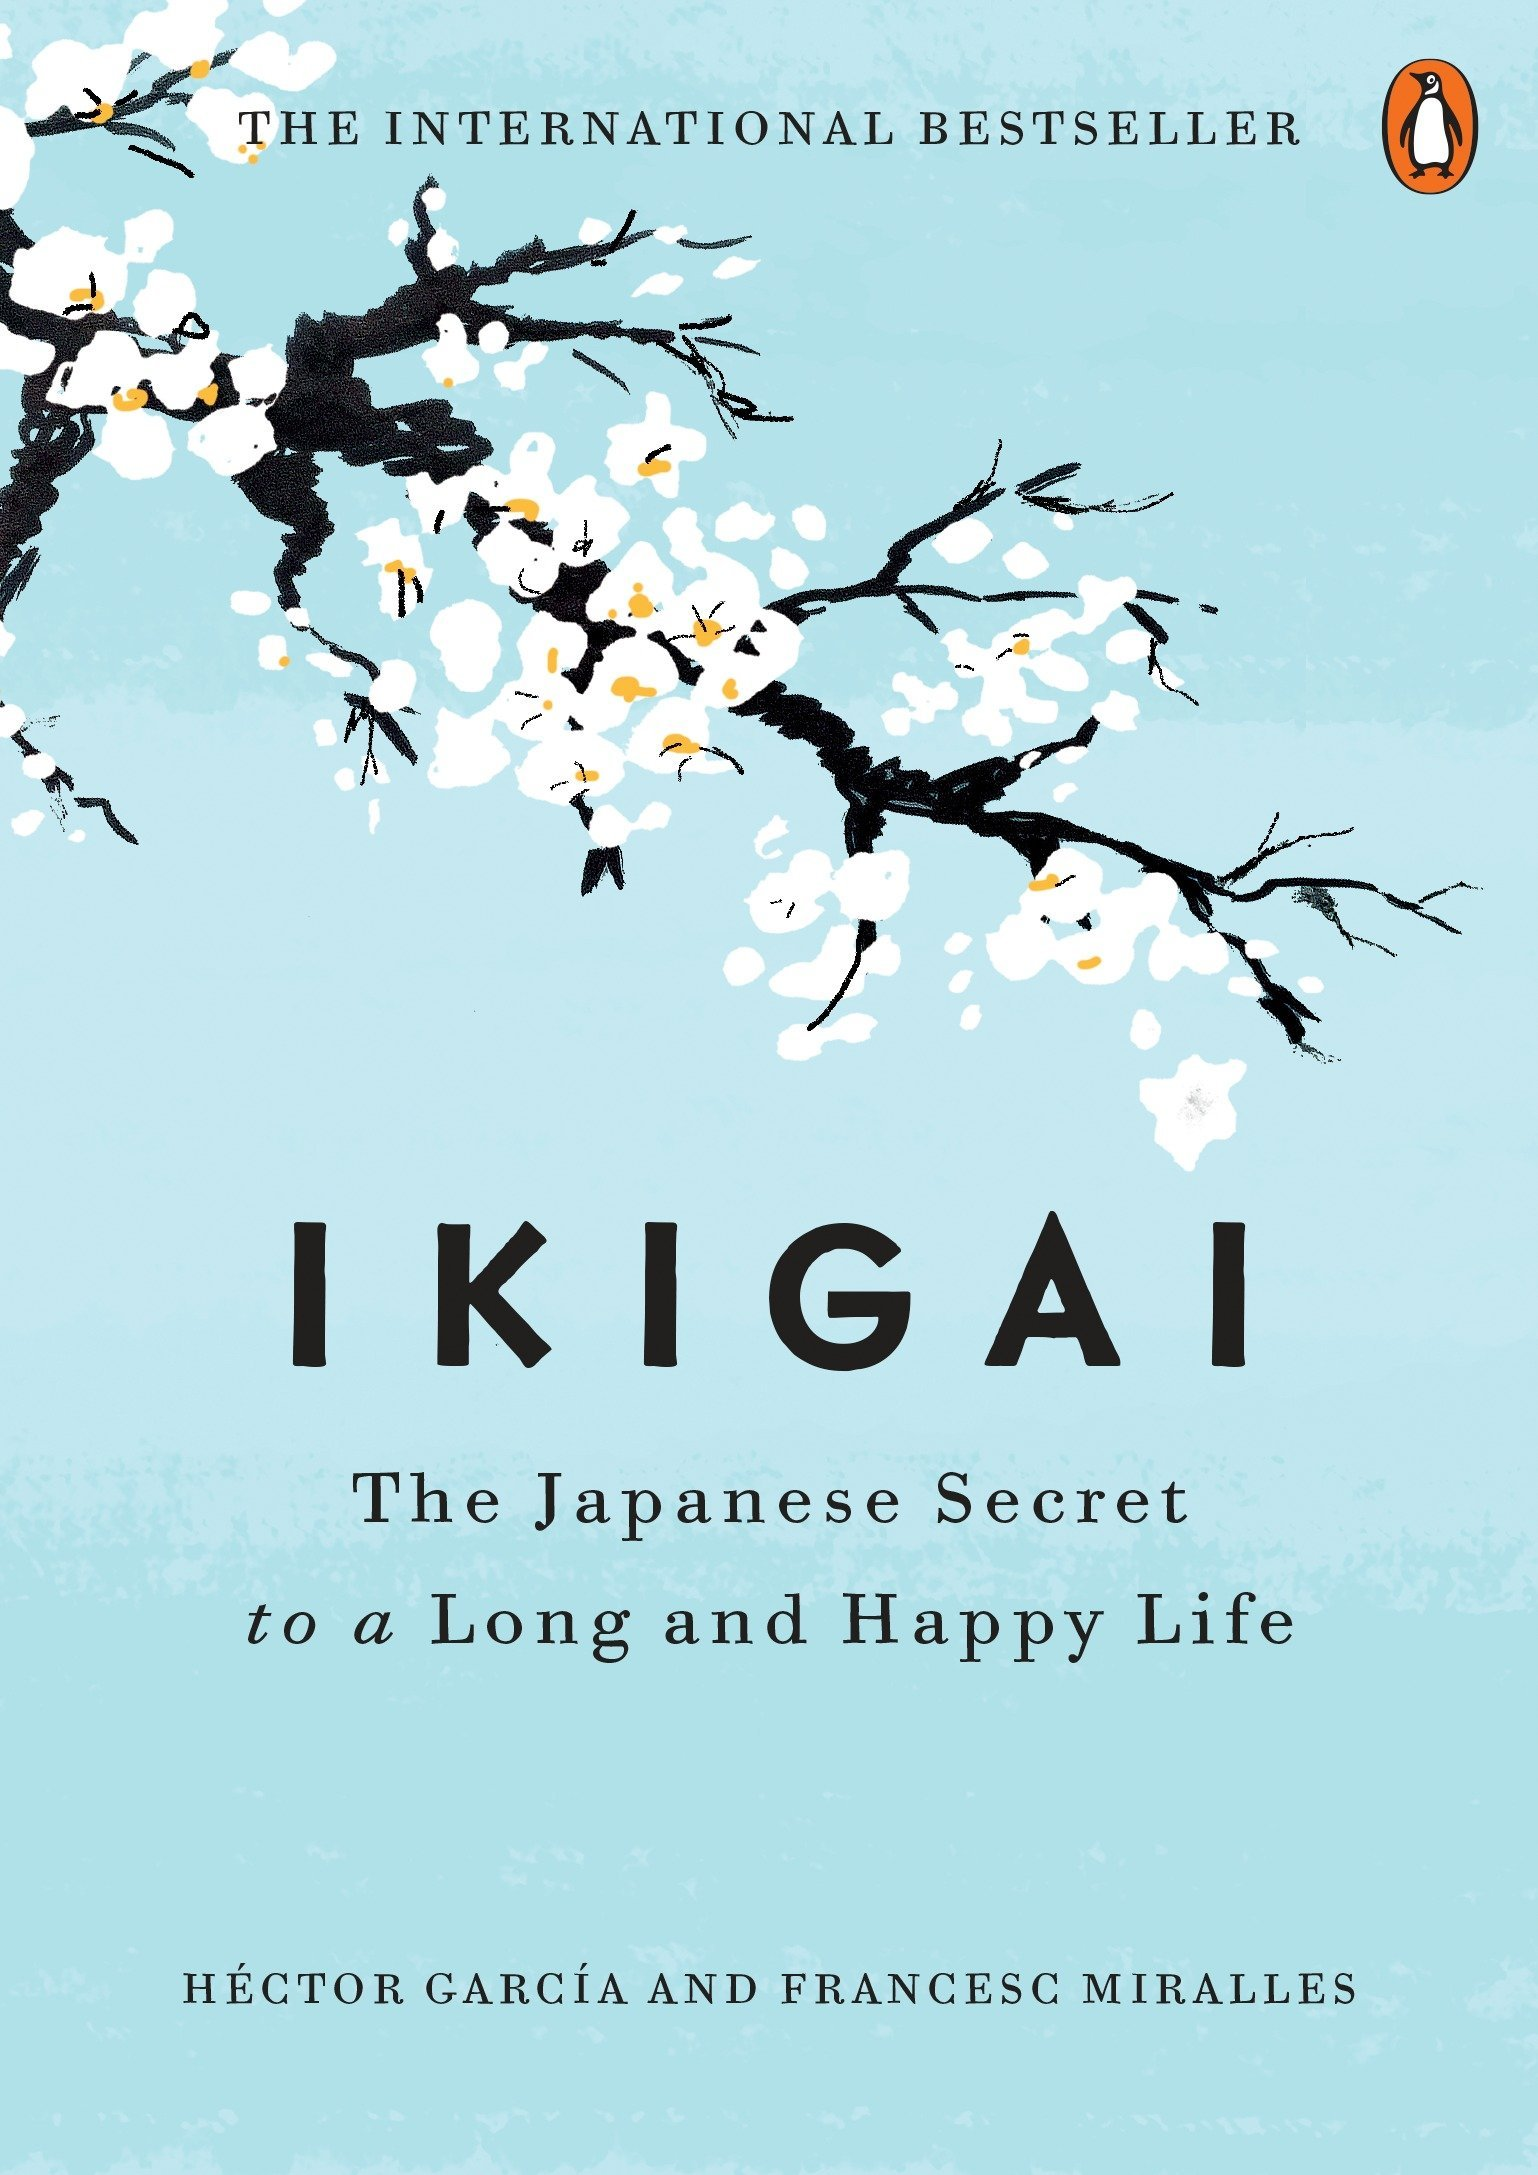 Ikigai  by Hector Garcia and Frances Miralles